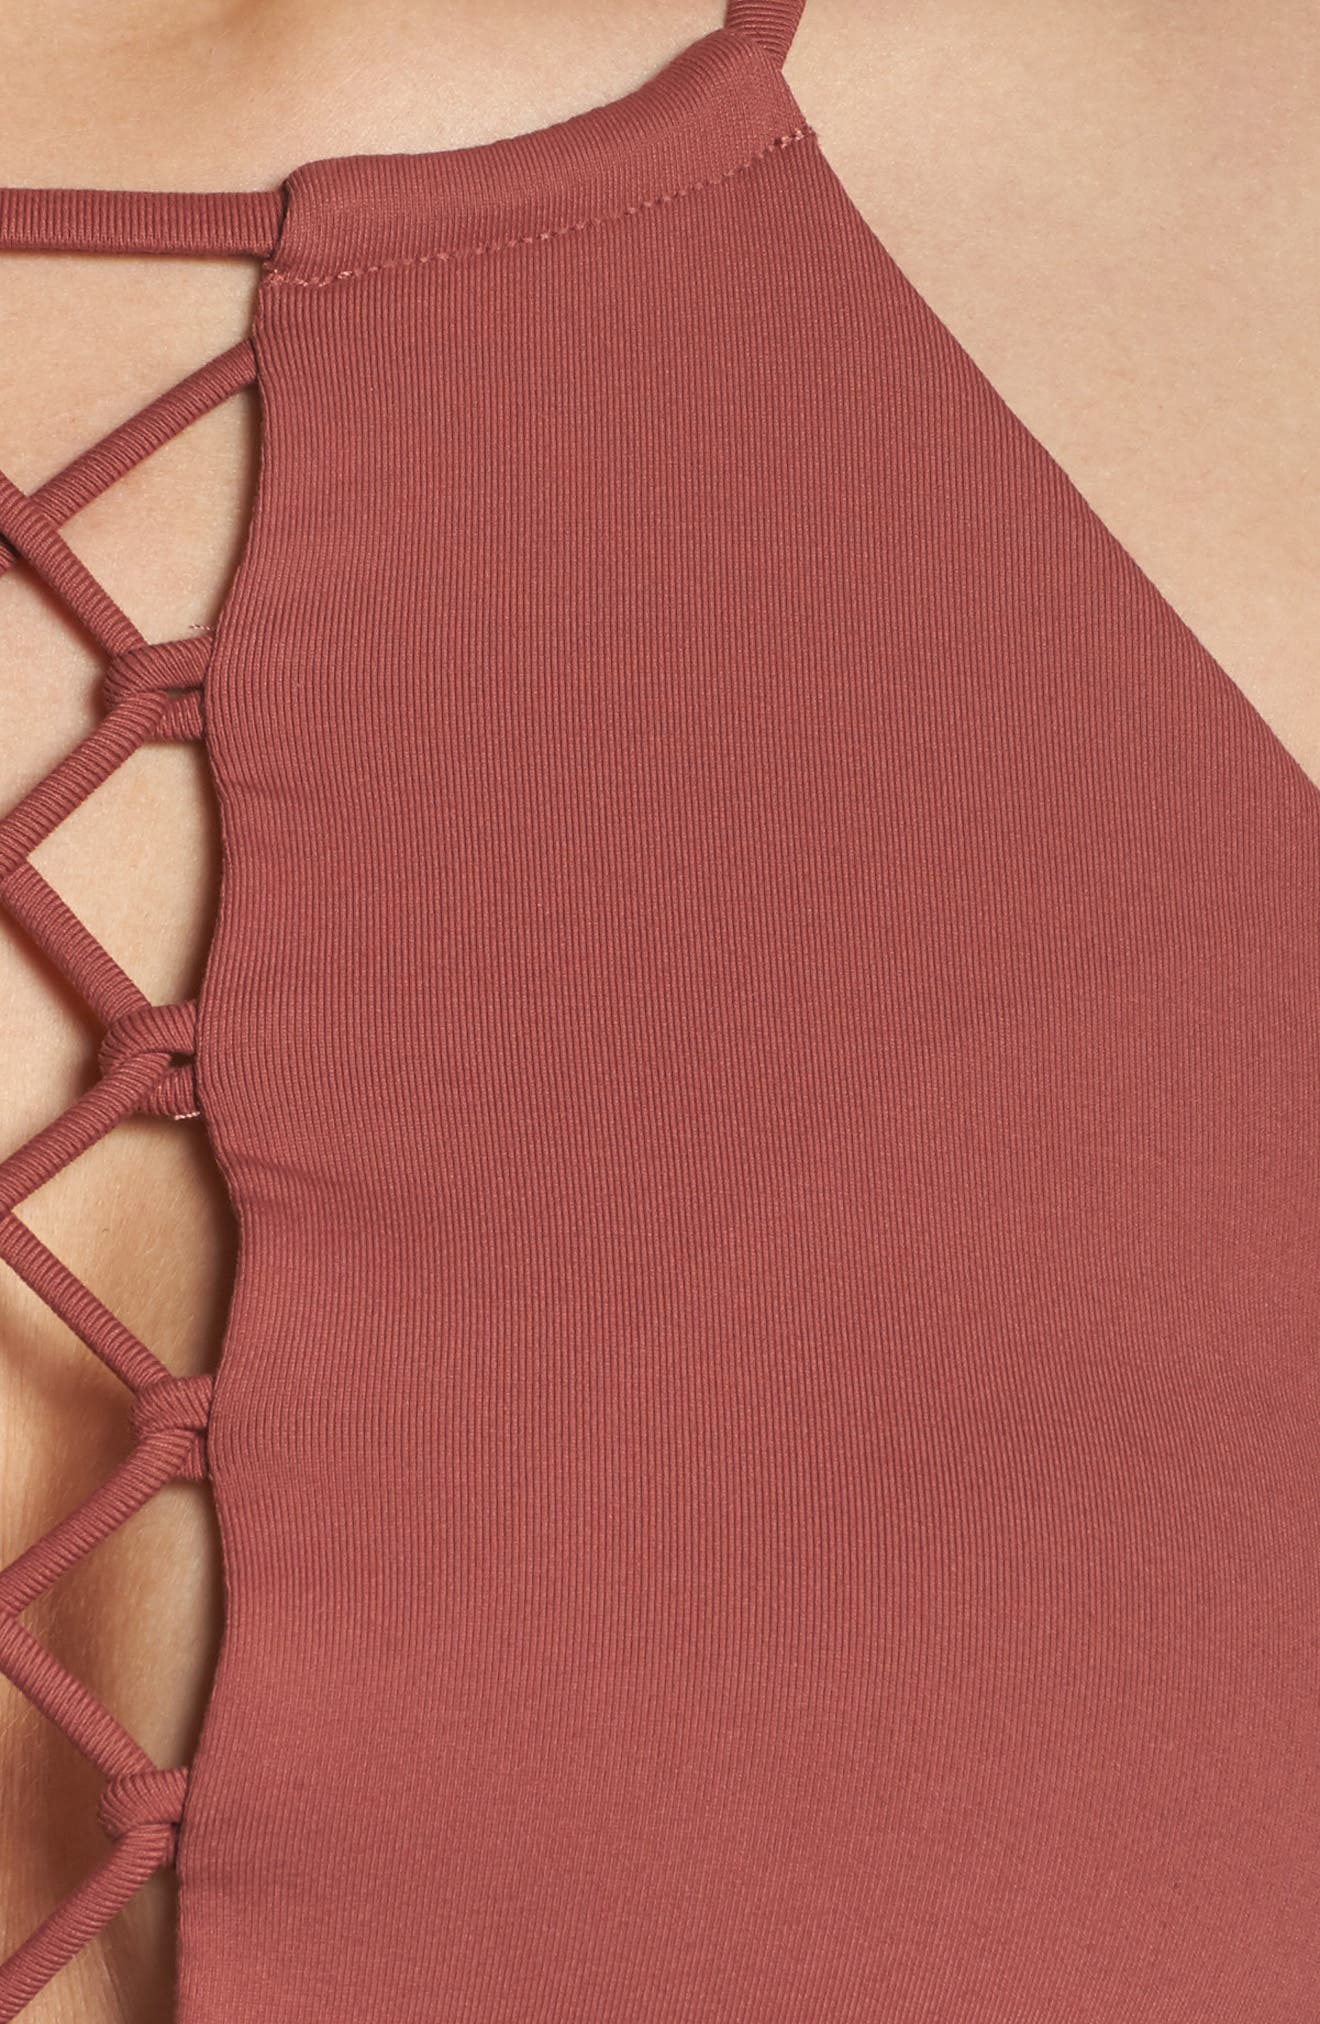 Starlet Lace-Up Bra,                             Alternate thumbnail 6, color,                             Earth